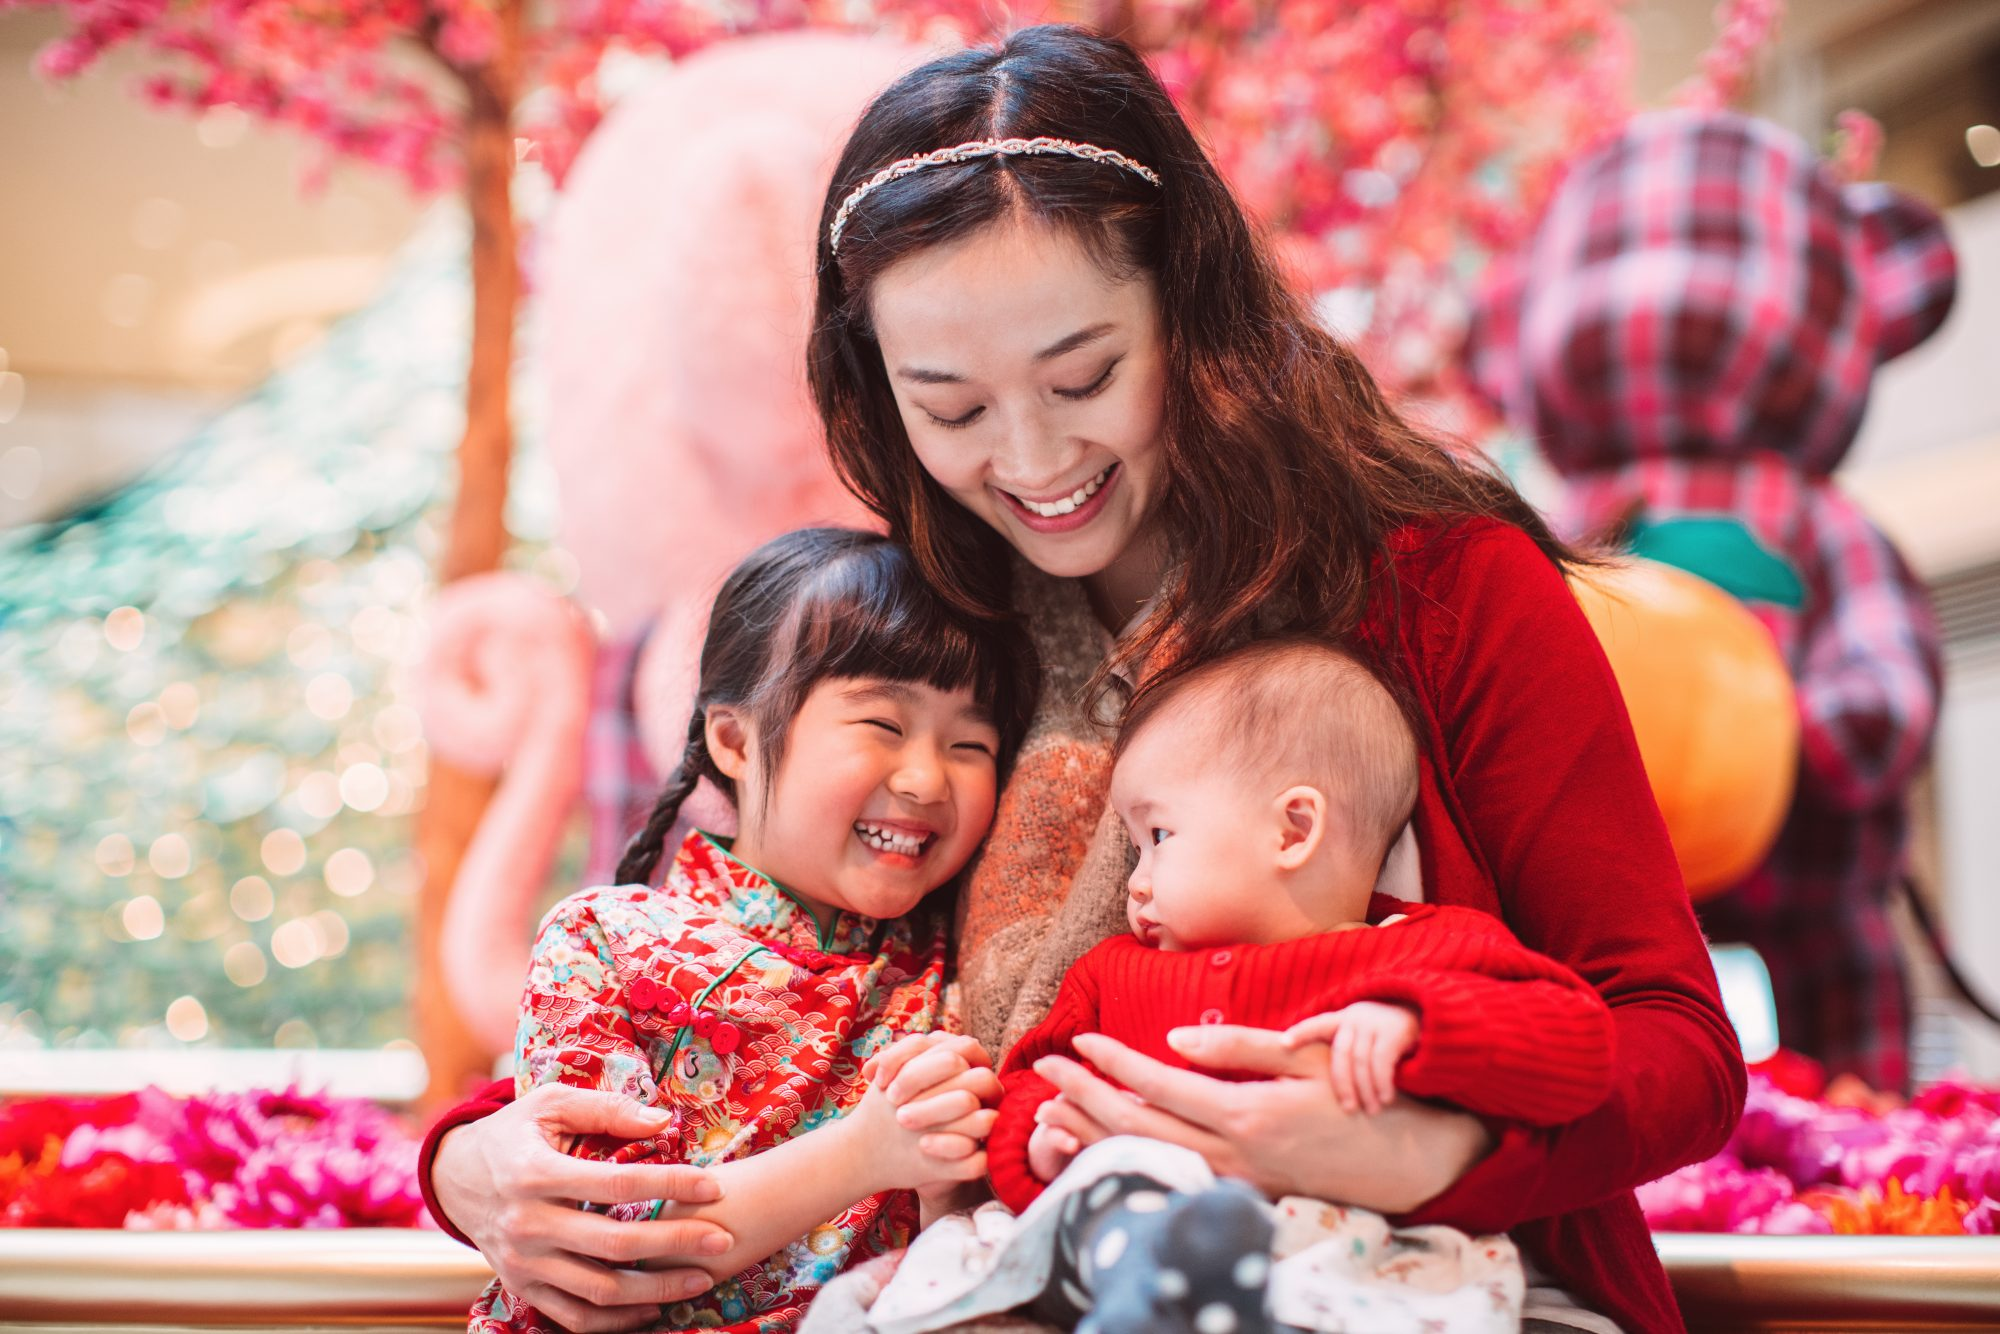 Pretty young mom hugging her little daughter and her baby joyfully during Chinese New Year.